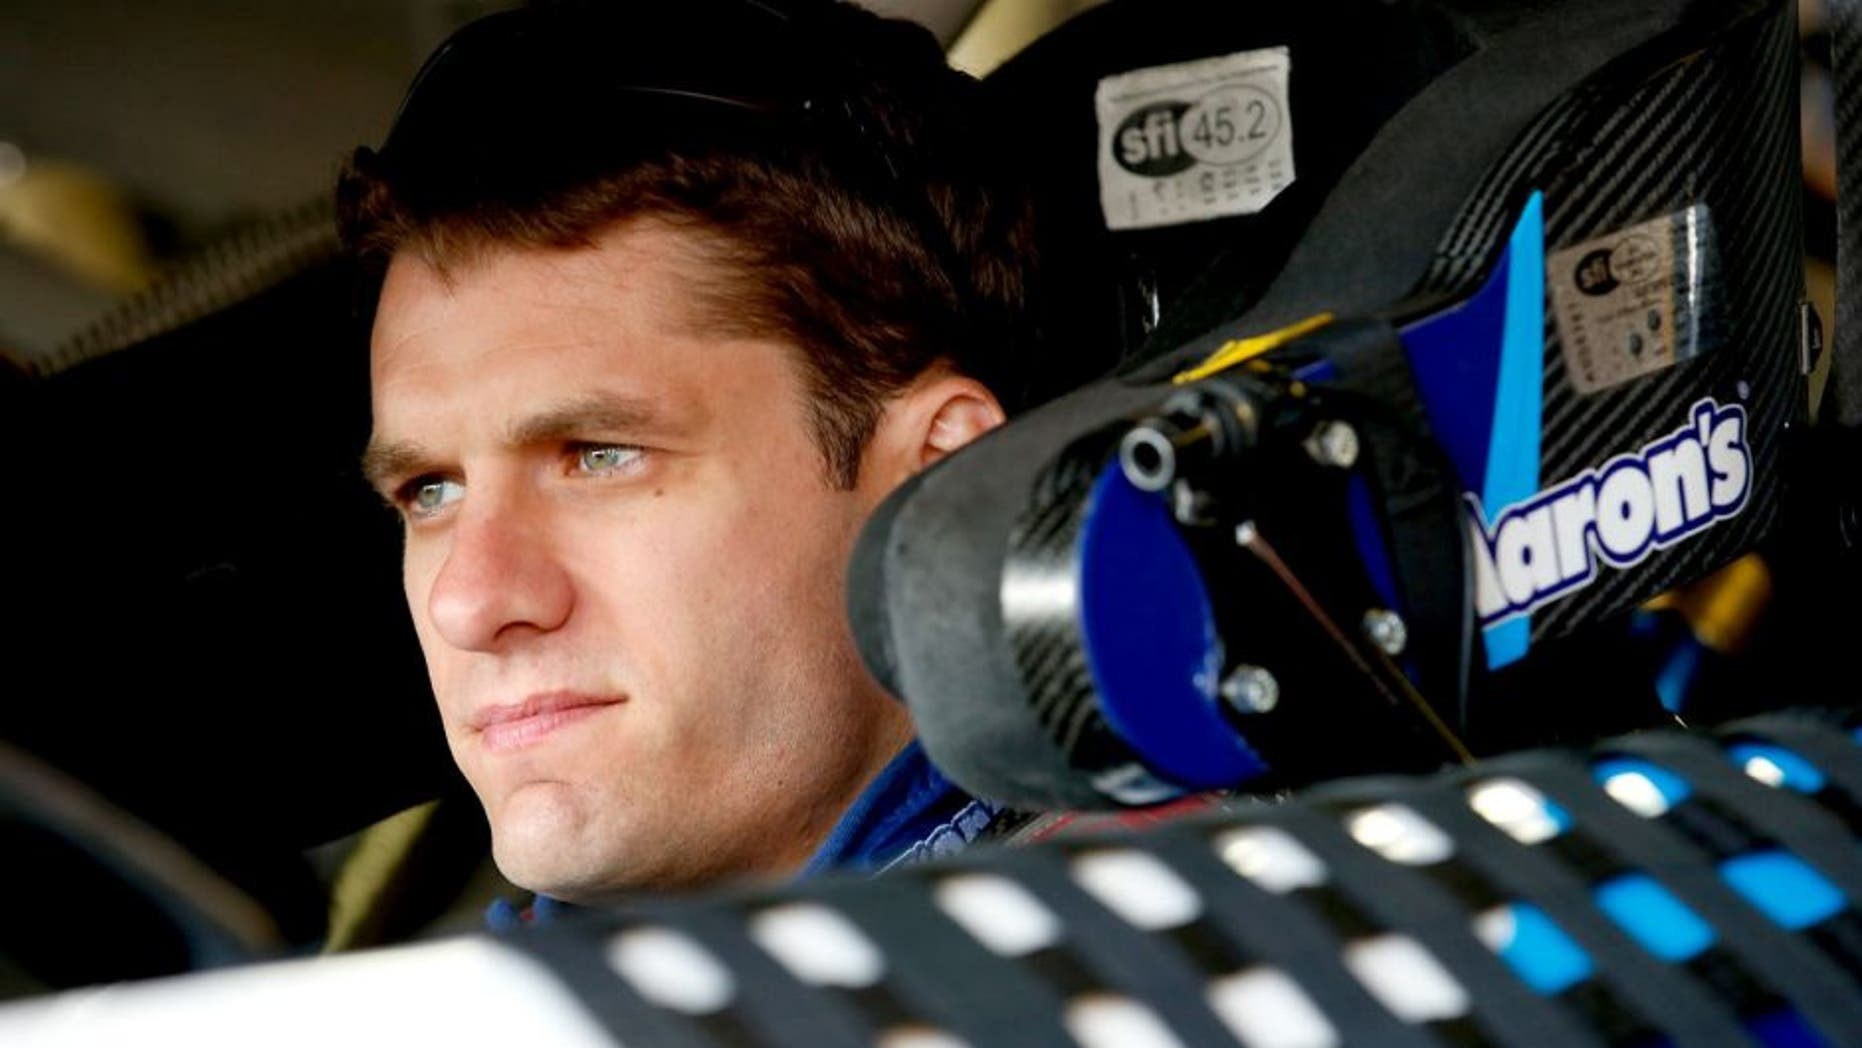 BROOKLYN, MI - AUGUST 15: David Ragan, driver of the #55 Aaron's Dream Machine Online Version Toyota, prepares to drive during practice for the NASCAR Sprint Cup Series Pure Michigan 400 at Michigan International Speedway on August 15, 2015 in Brooklyn, Michigan. (Photo by Gregory Shamus/Getty Images)